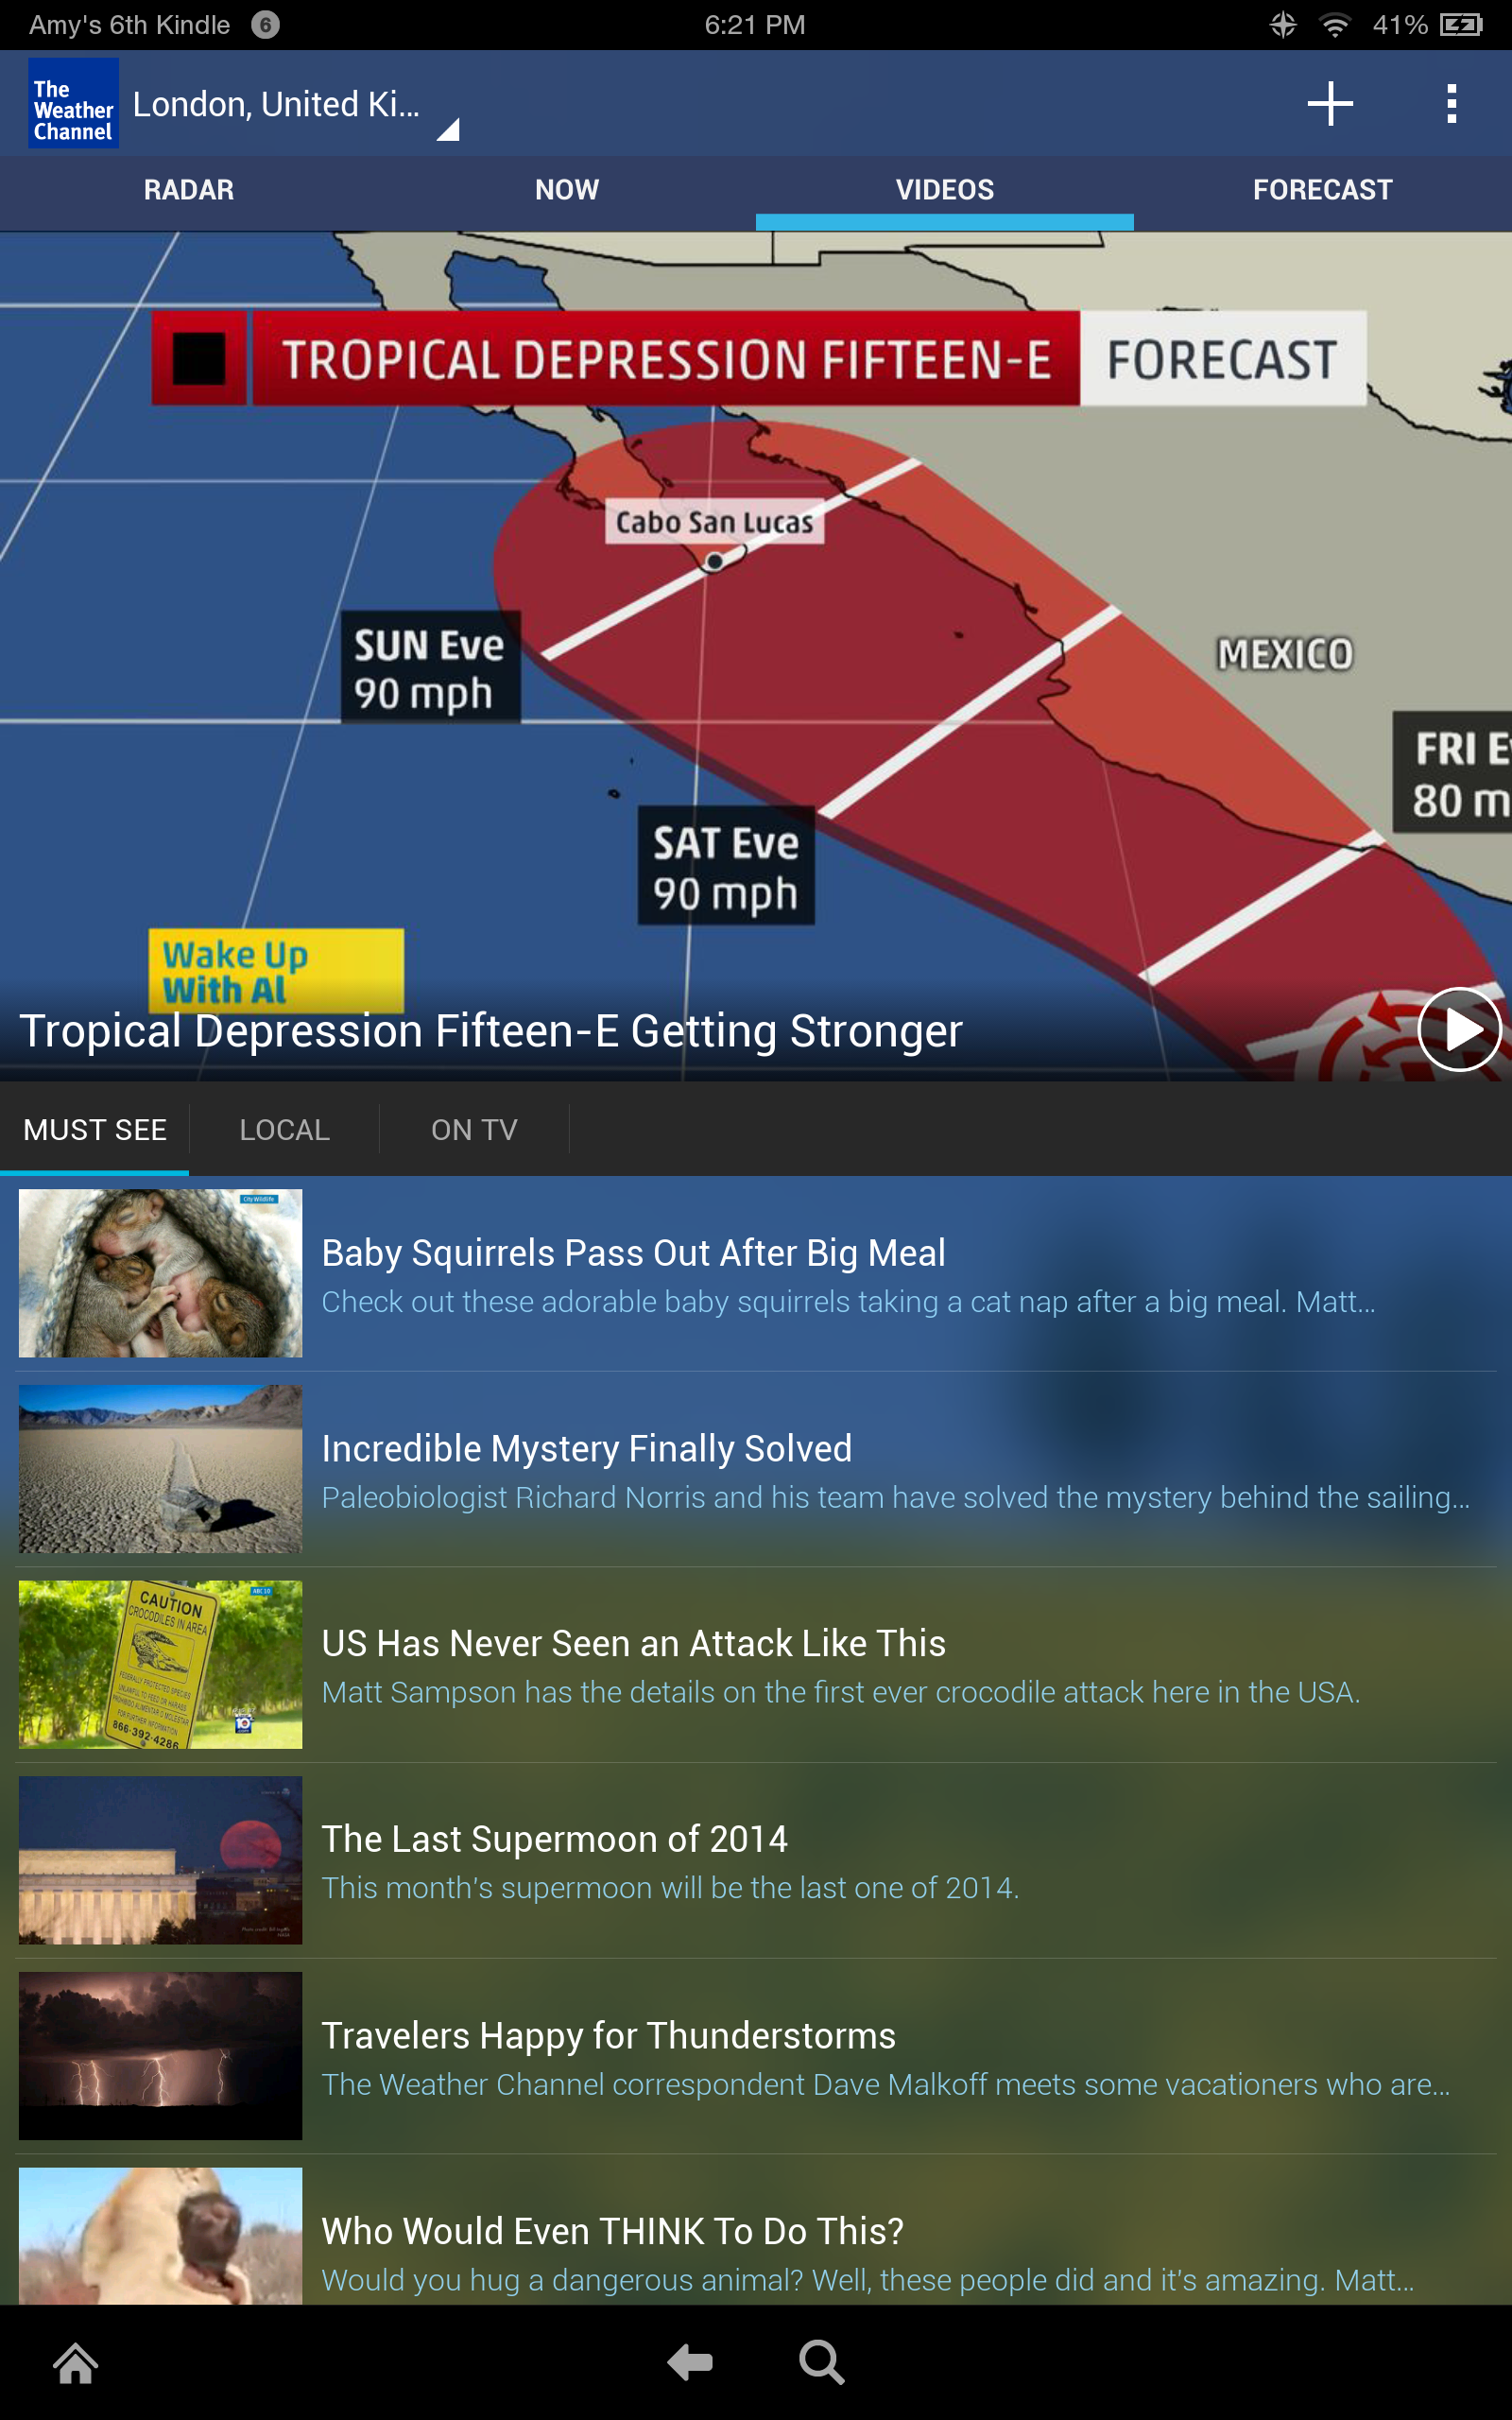 amazon com  the weather channel for android  appstore for